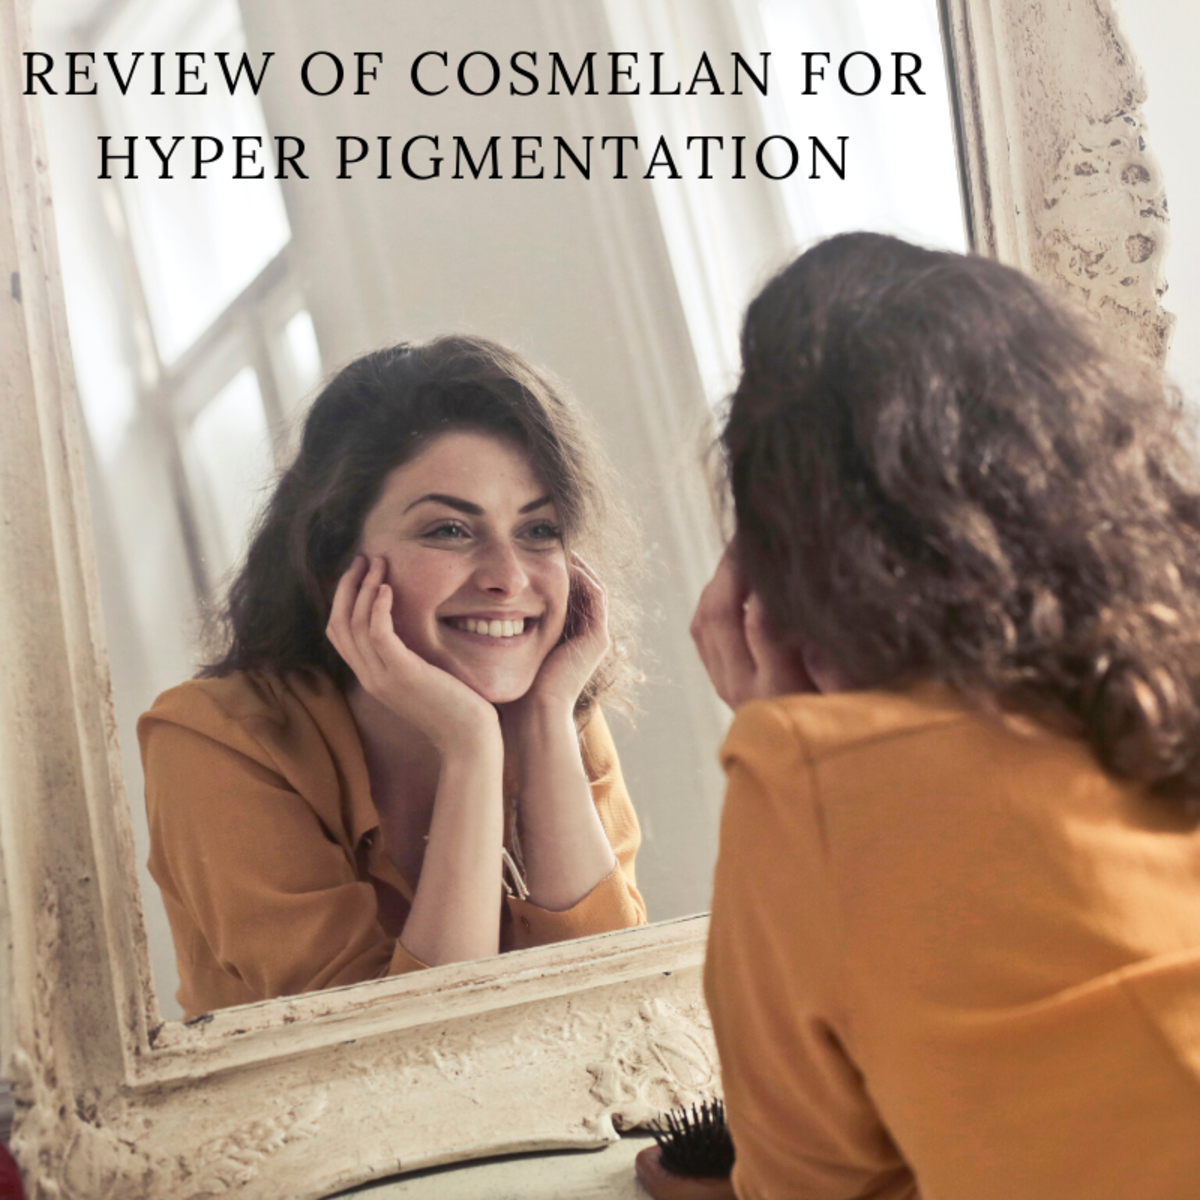 product-review-cosmelan-for-hyperpigmentation